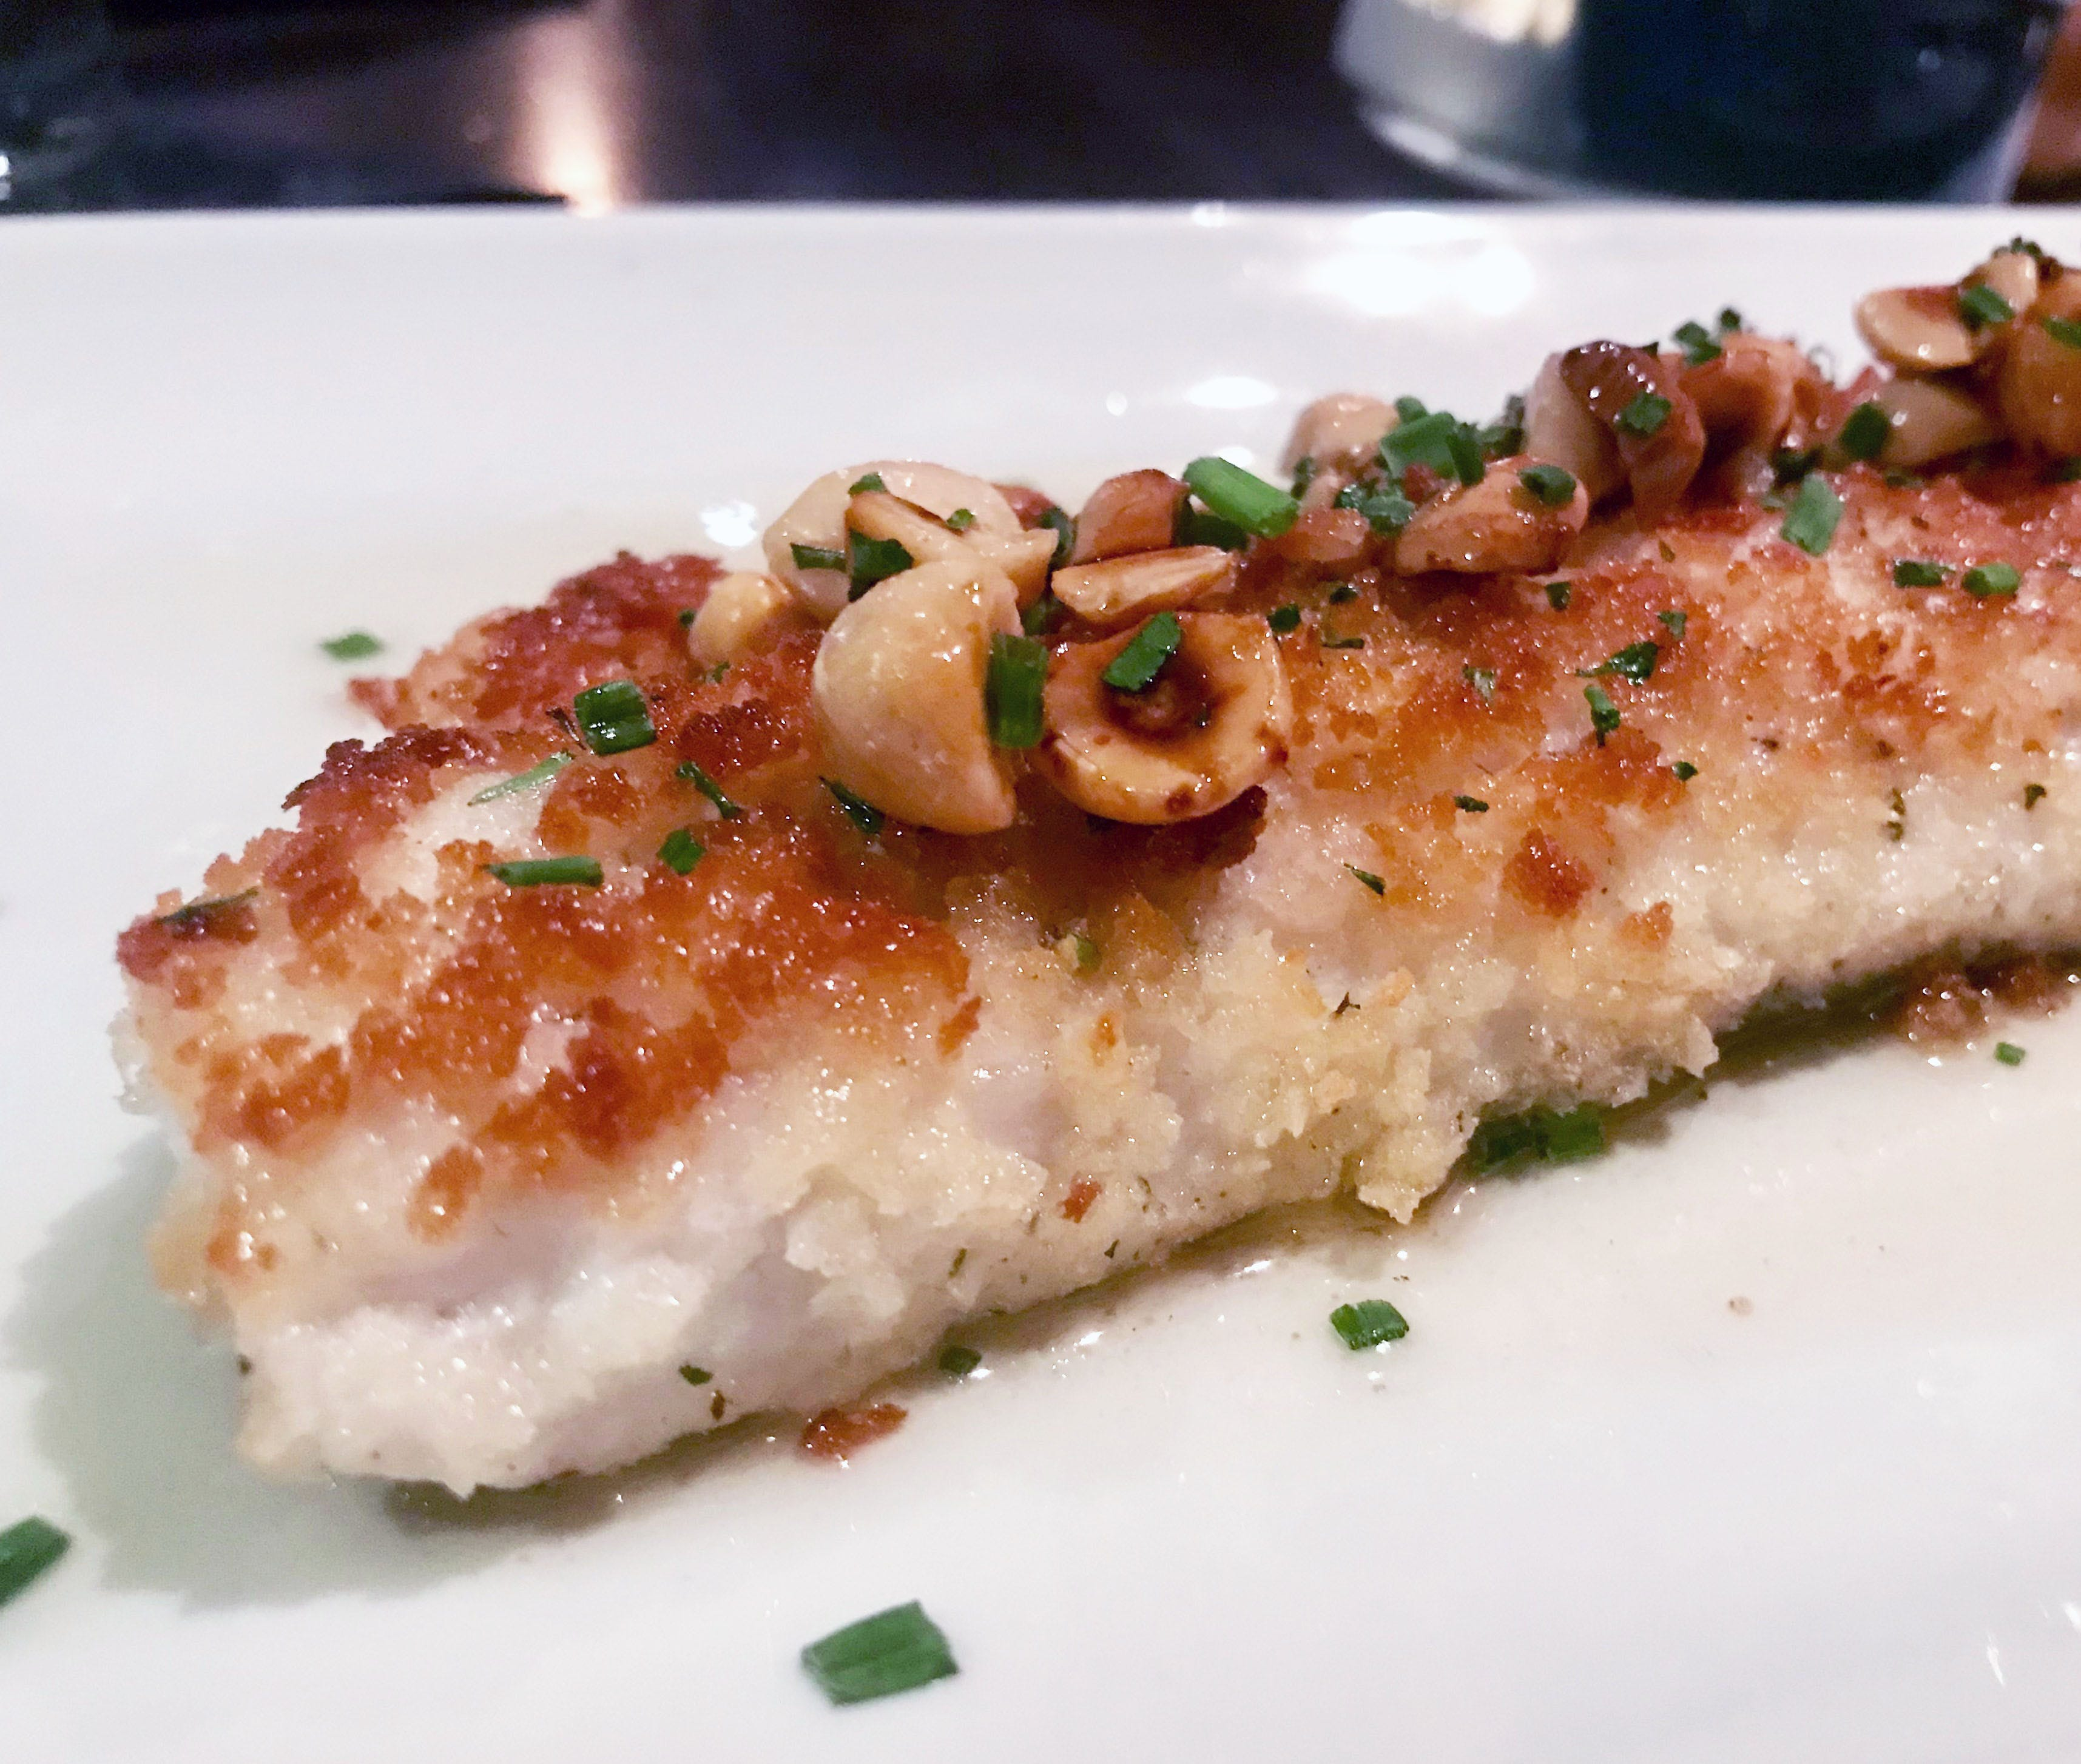 Walleye is crusted in panko crumbs and topped with hazelnuts at Jake's in Pewaukee. Lemon-butter sauce accompanies it.